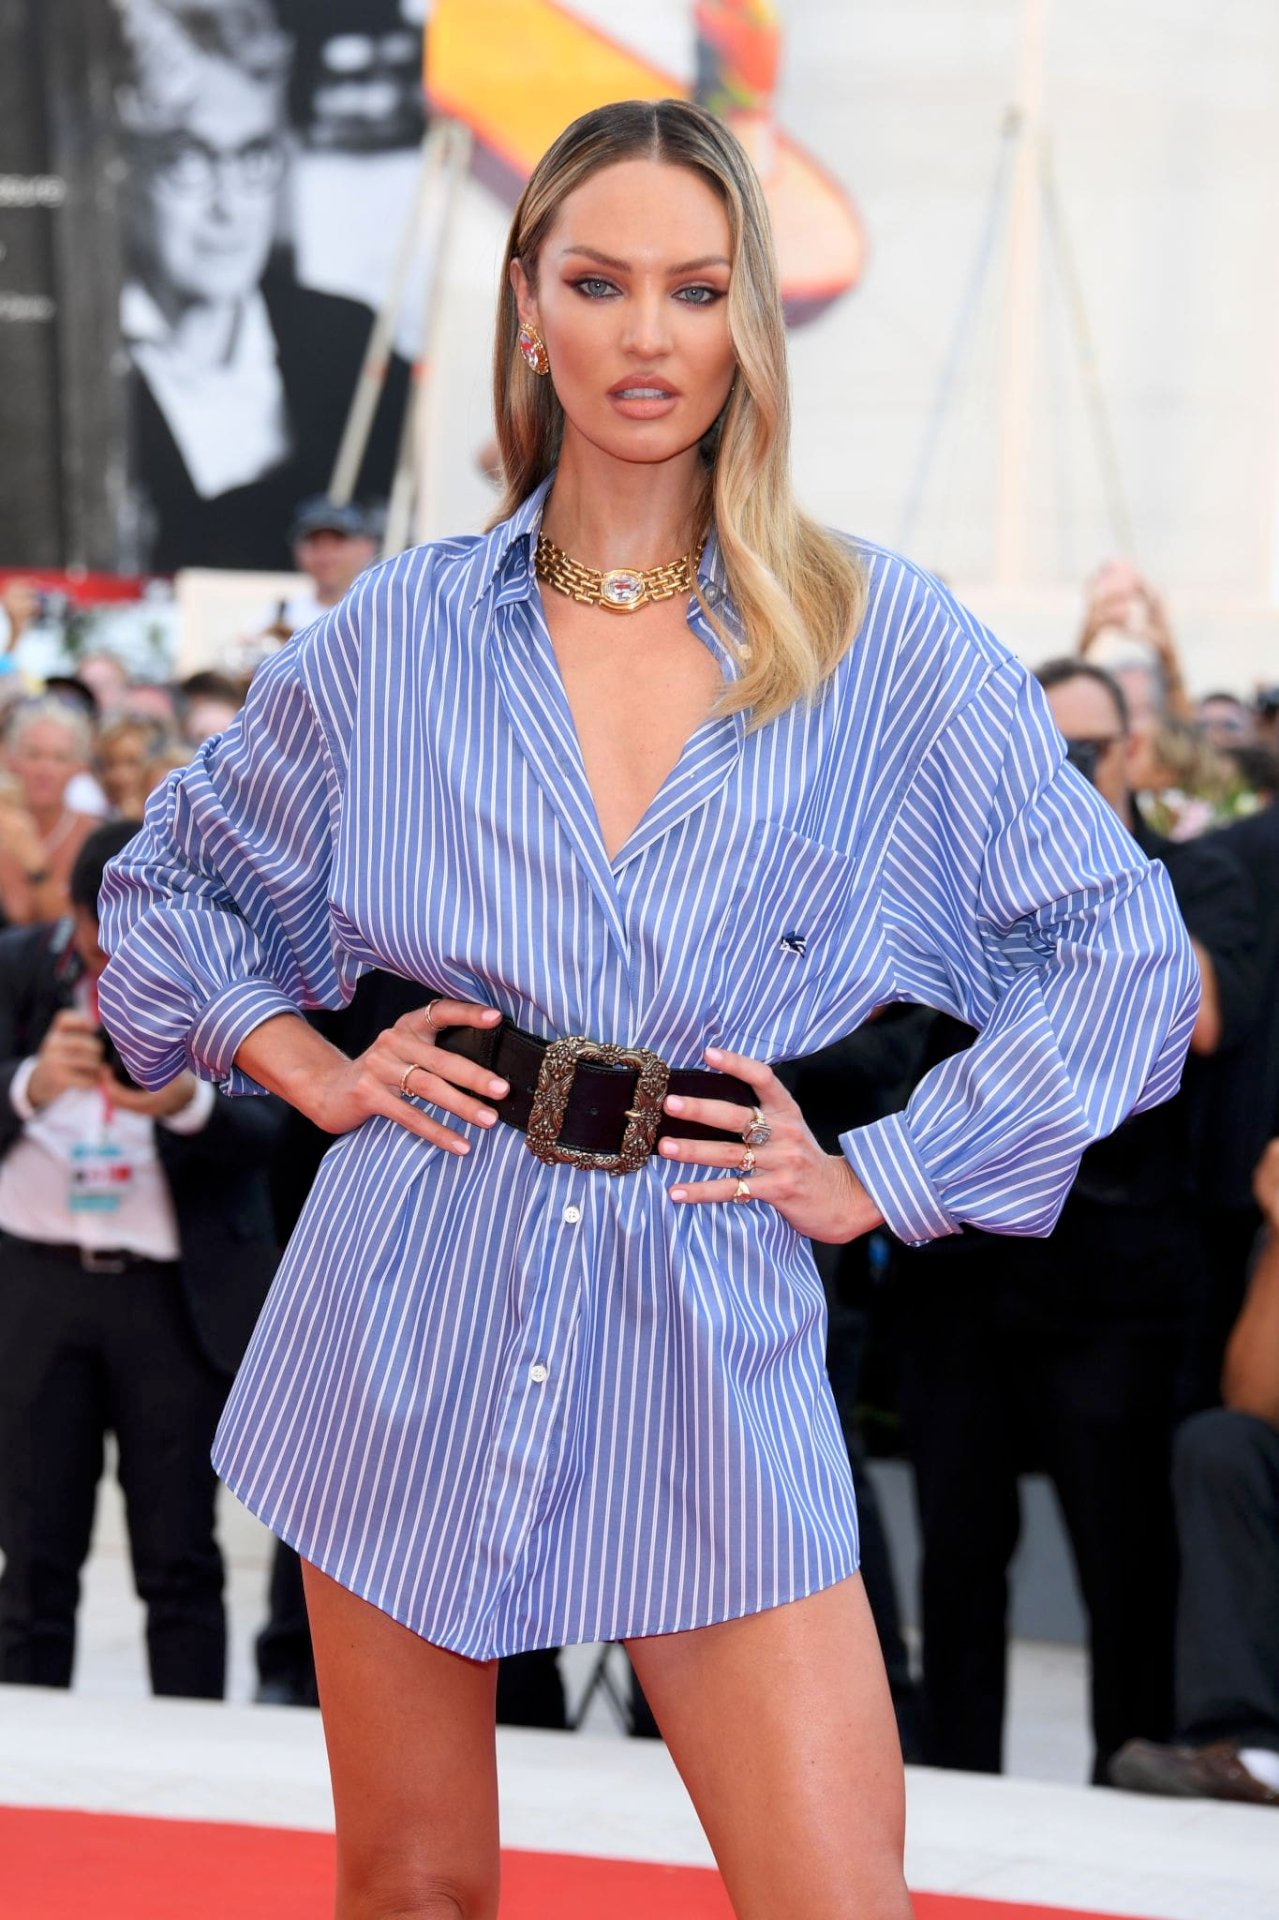 Candice Swanepoel - Braless Candids in Milan - Hot Celebs Home